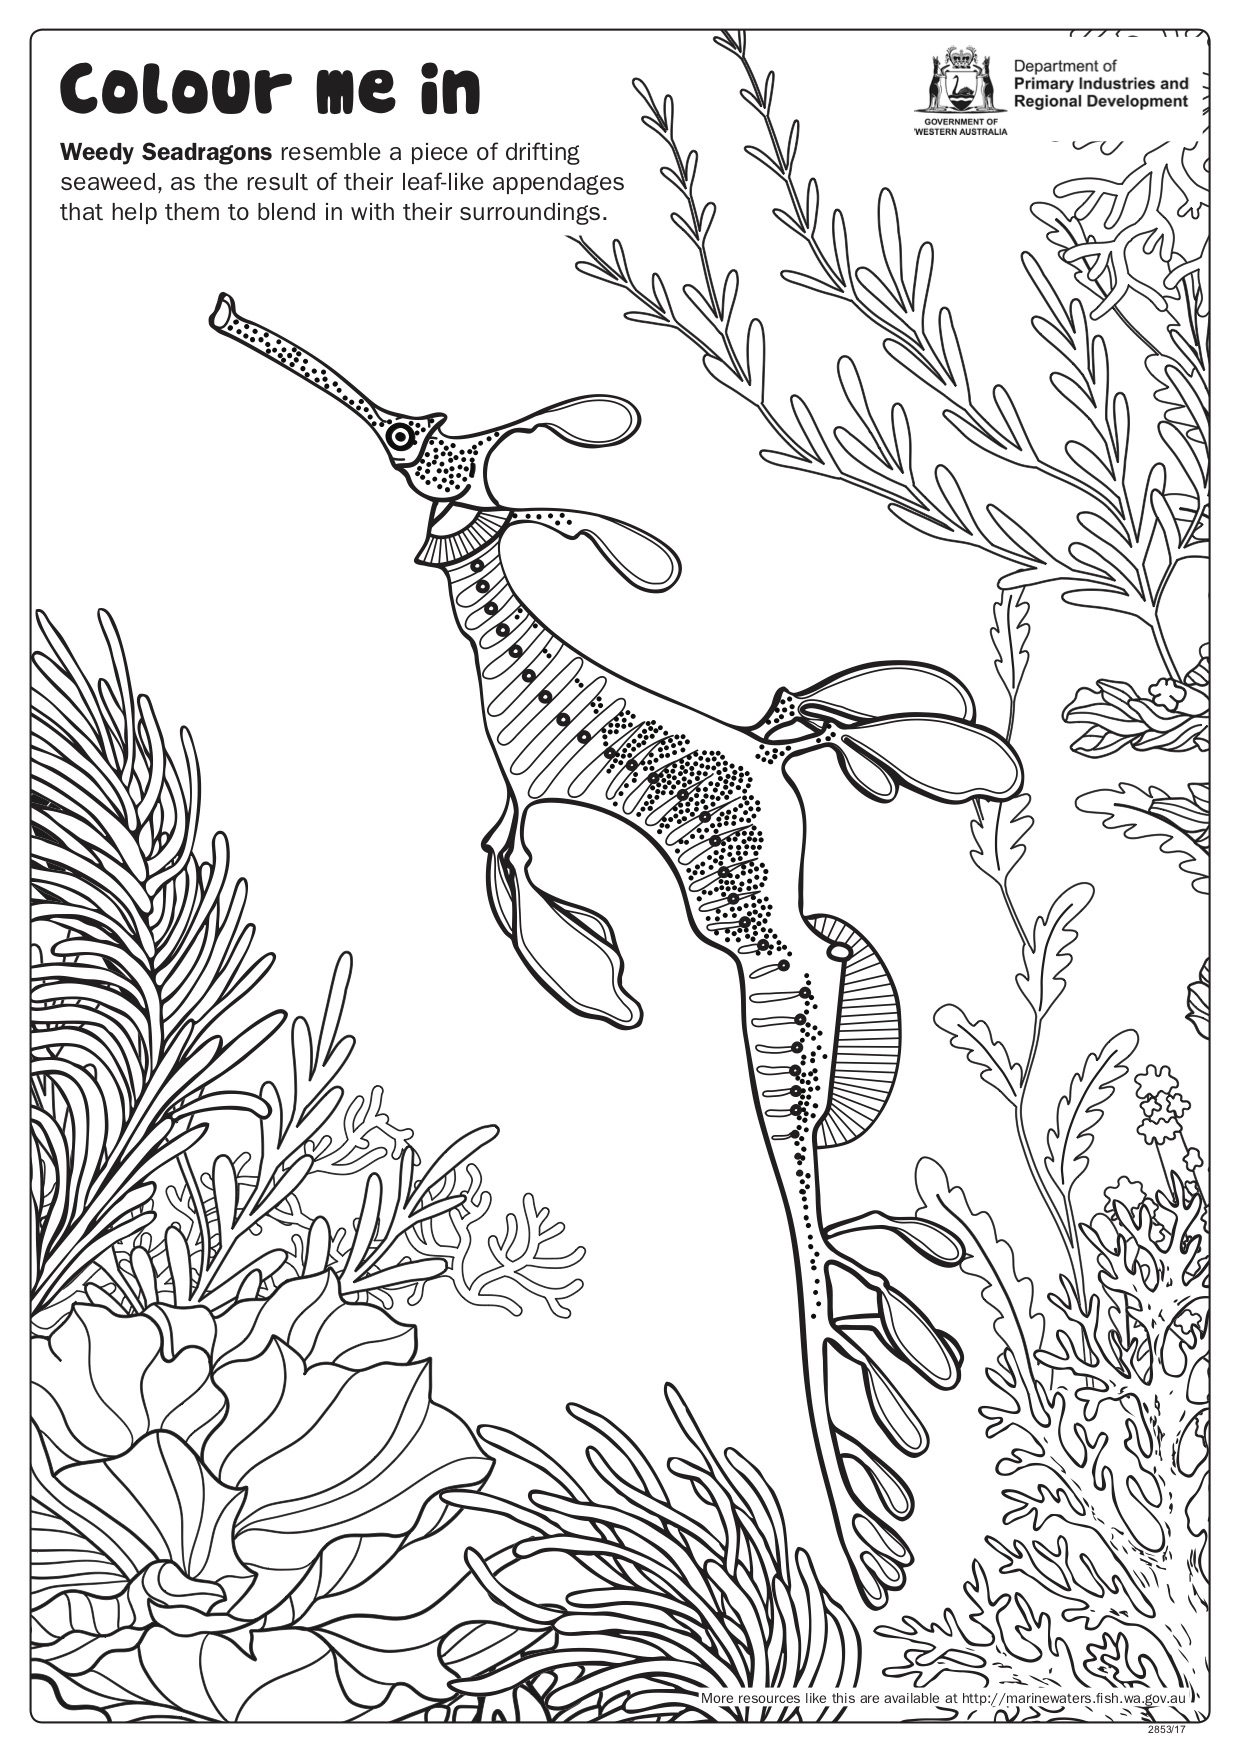 Fishy Fun Sheet Weedy Seadragon